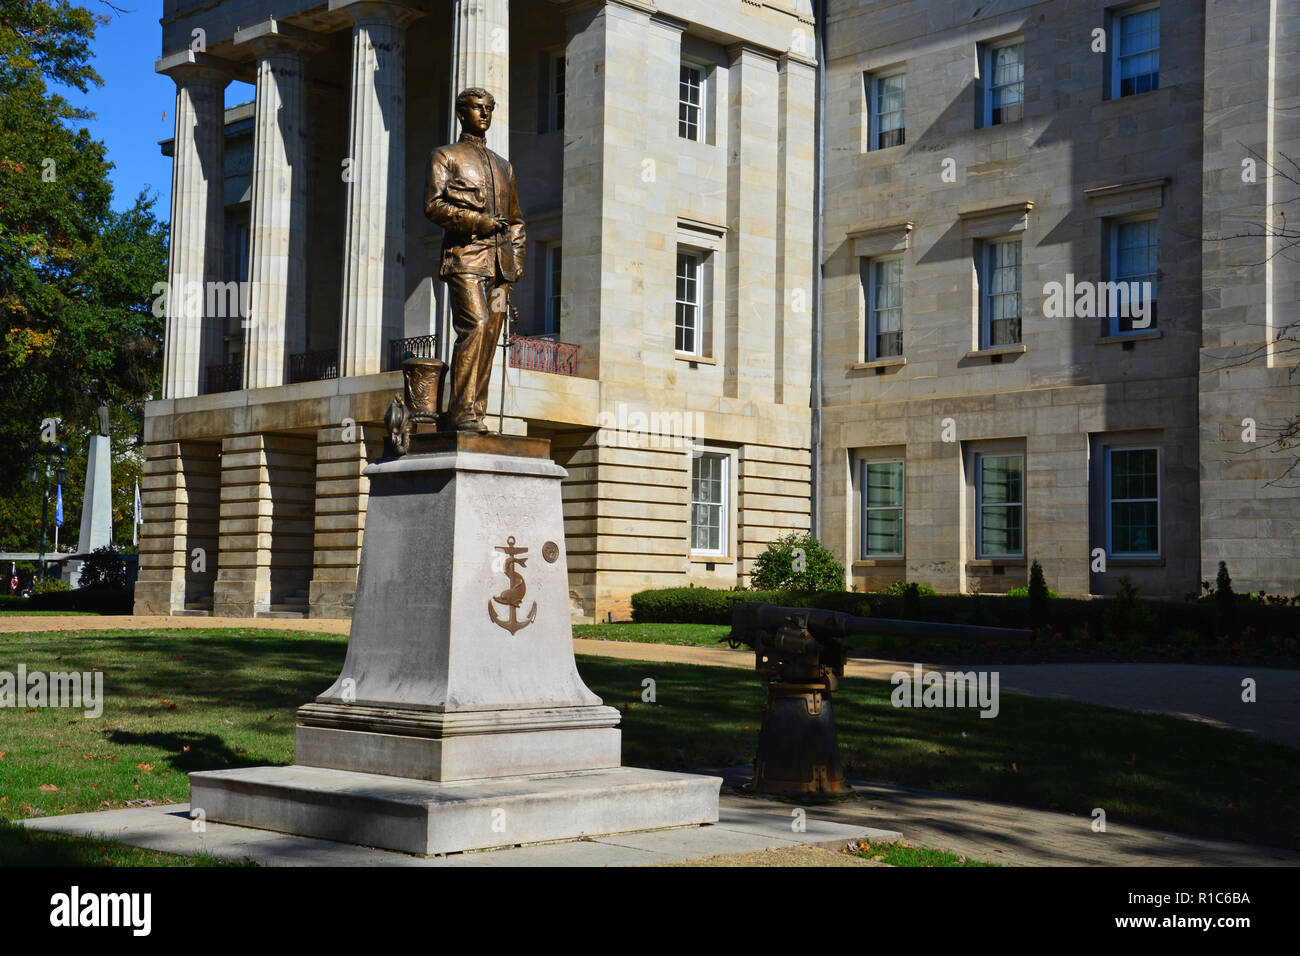 A memorial to Worth Bagley outside the old NC Capitol building. In 1898 Worth was the first American killed in the Spanish-American War in in Cuba. - Stock Image